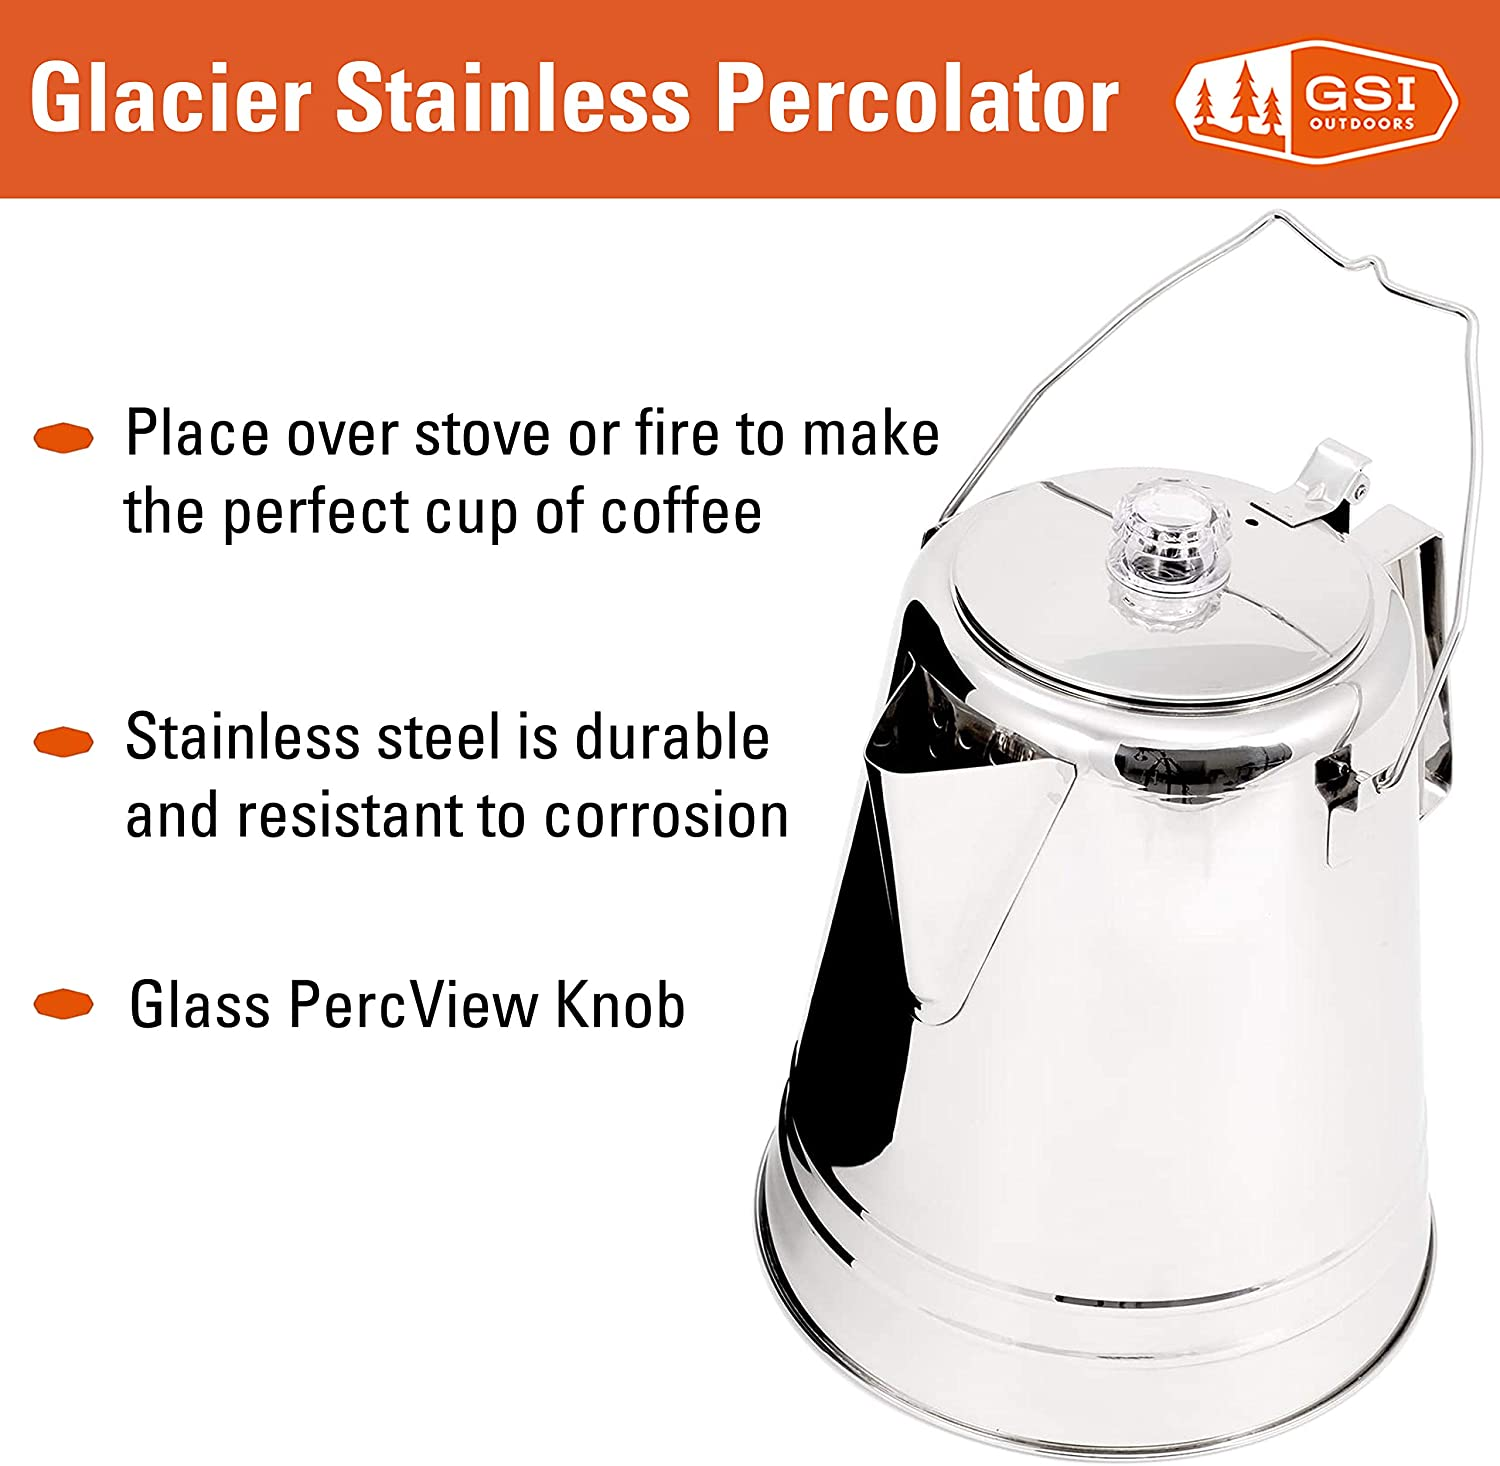 GSI Outdoors Glacier Stainless Steel Percolator Coffee Pot | Ultra-Rugged for Brewing Coffee Over Stove and Fire | Ideal for Group Camping